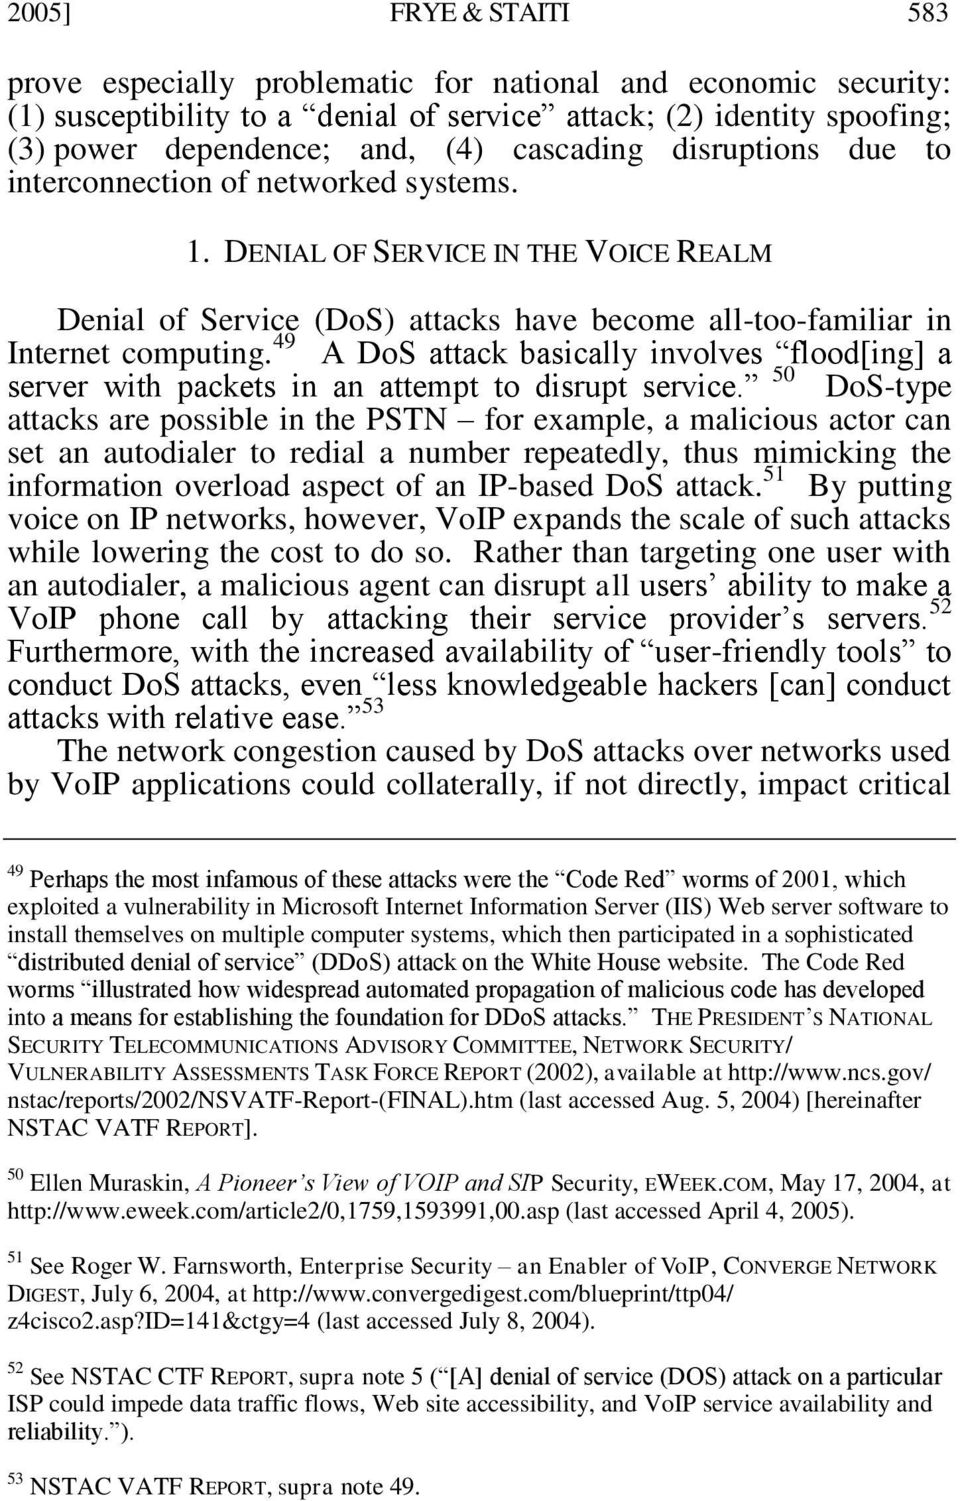 49 A DoS attack basically involves flood[ing] a server with packets in an attempt to disrupt service.